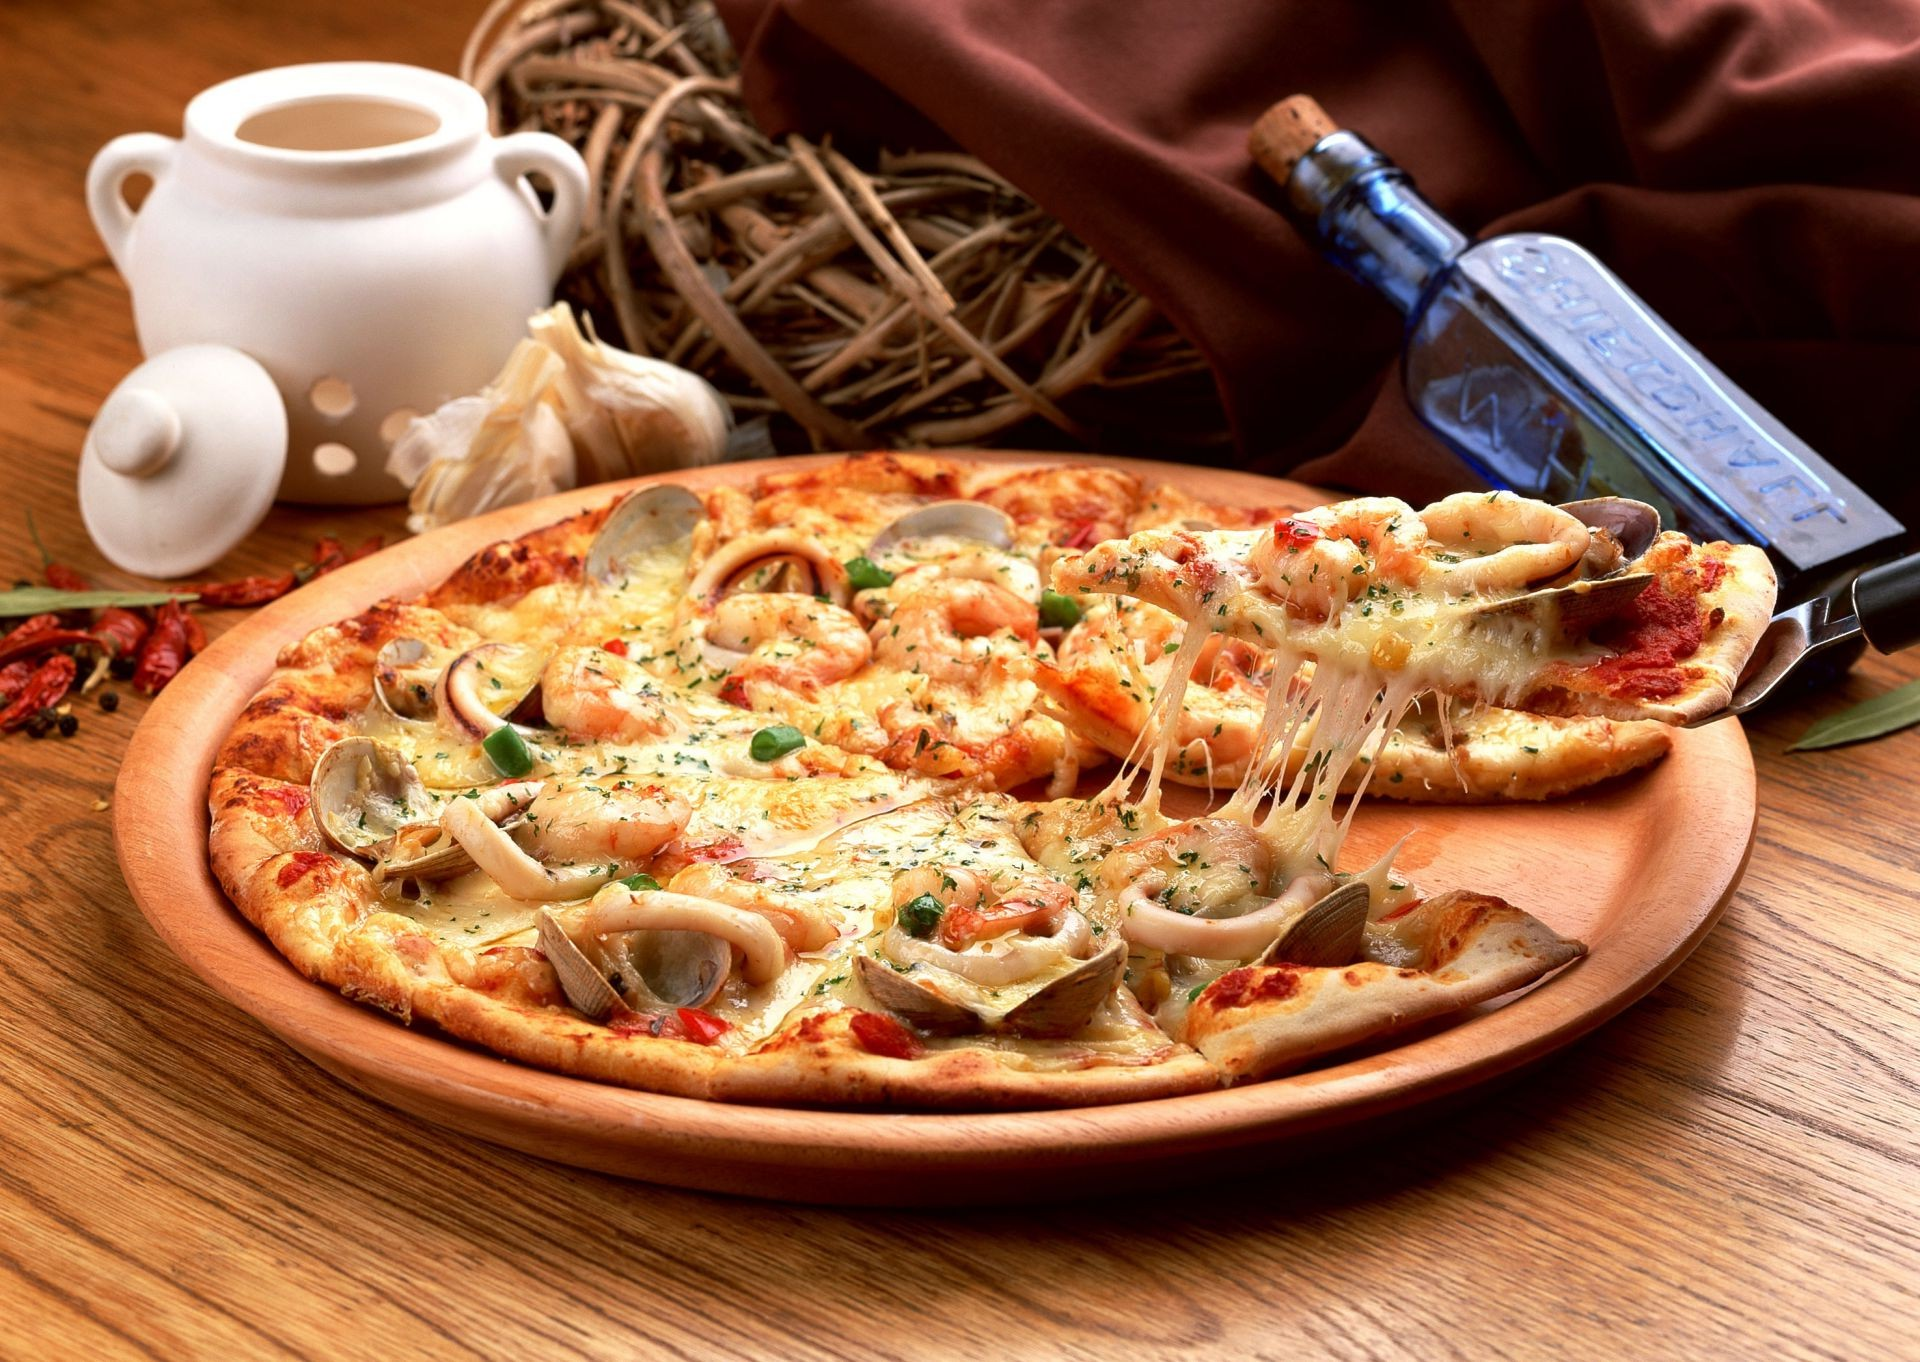 squid pizza Pizza mussels spices dish seafood